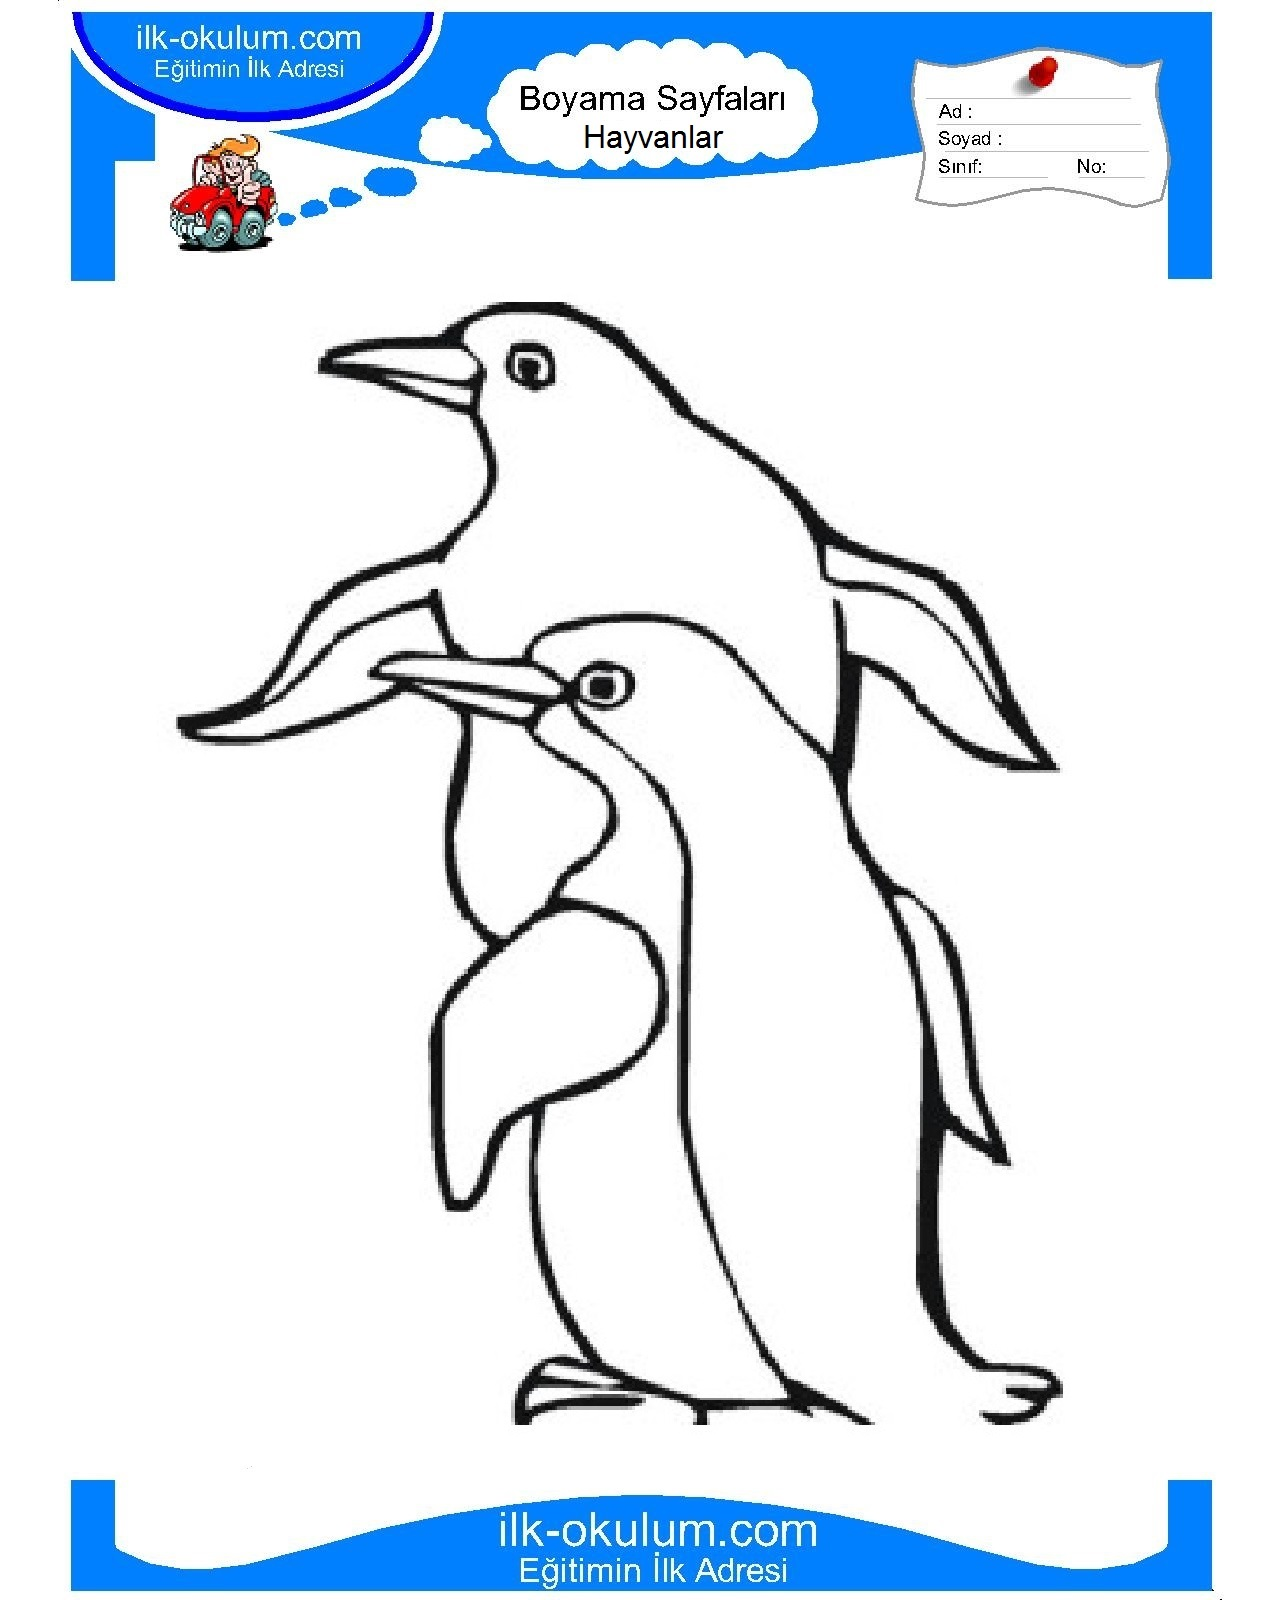 Penguin Coloring Pages - Free Printable for Kids Pinterest Coloring pictures of penguins for kids